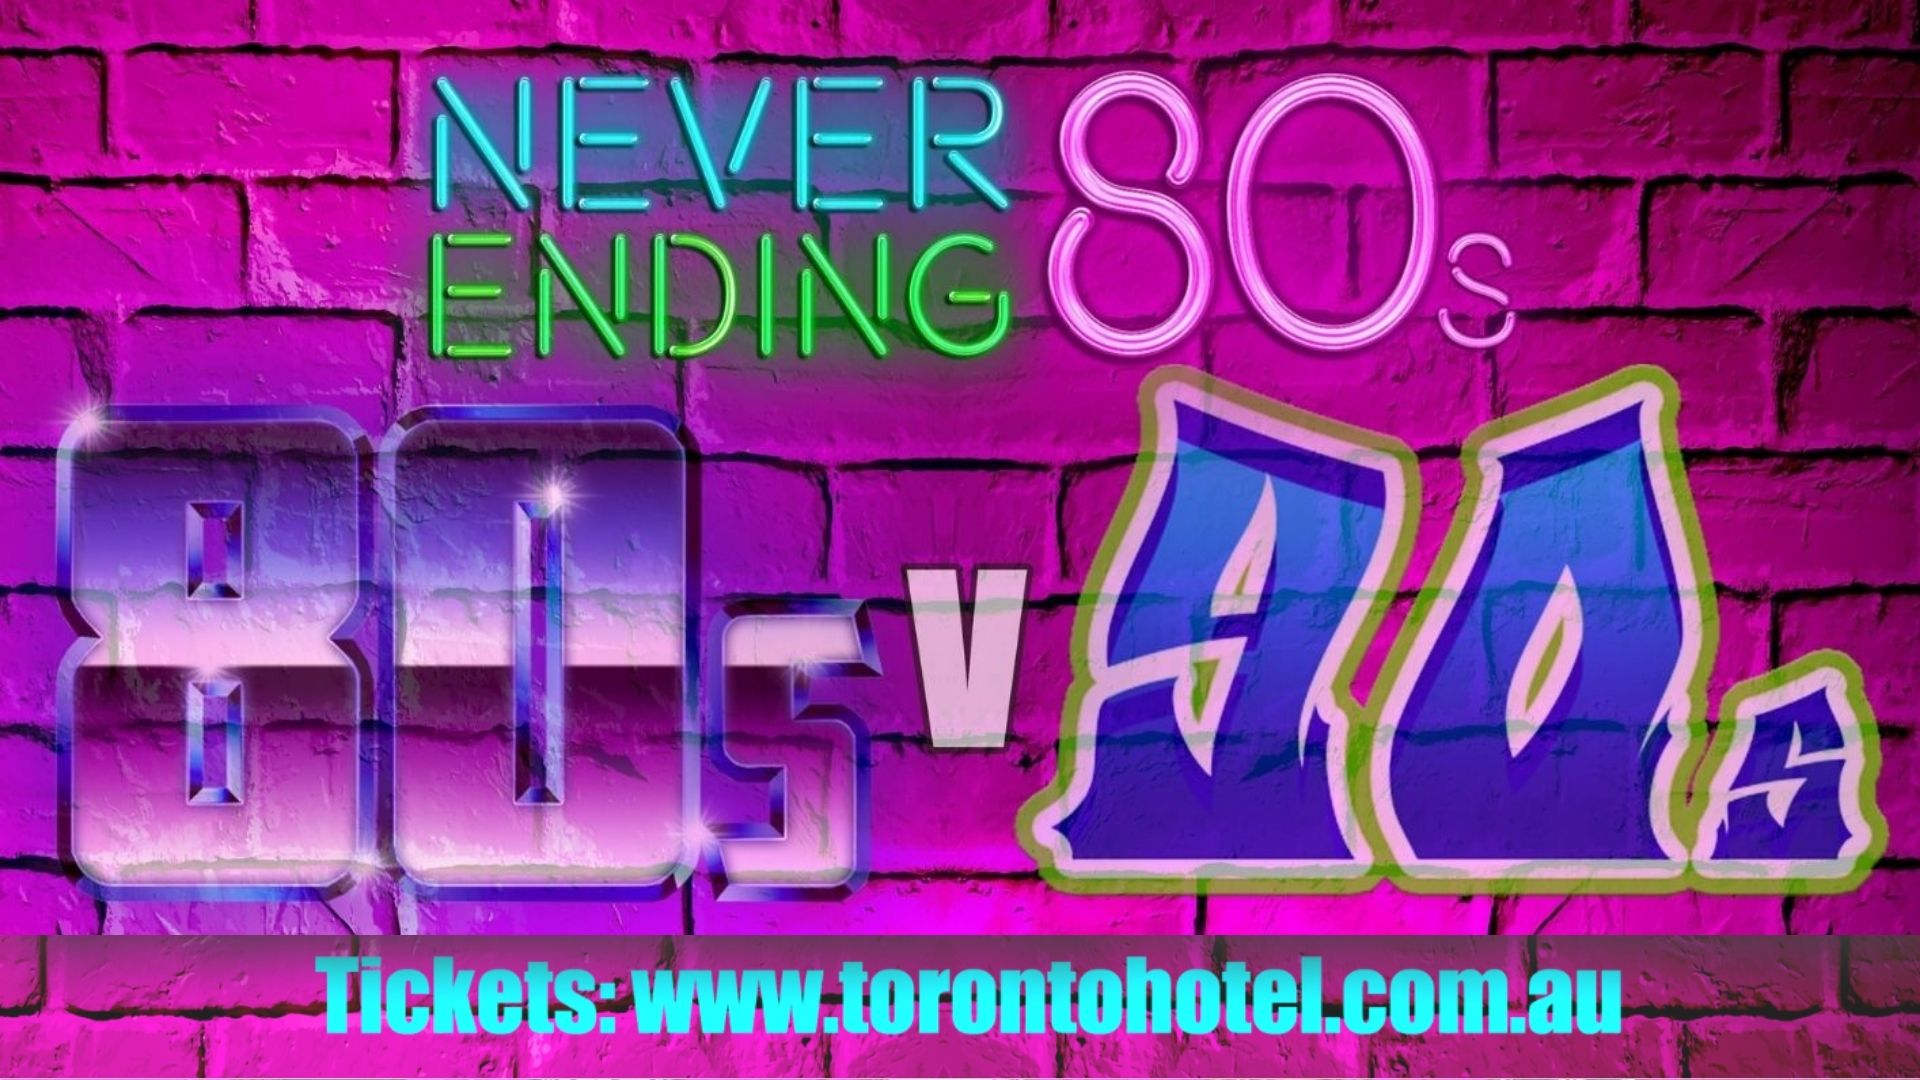 Never Ending 80s presents 80s V 90s – The Battle Of The Decades!